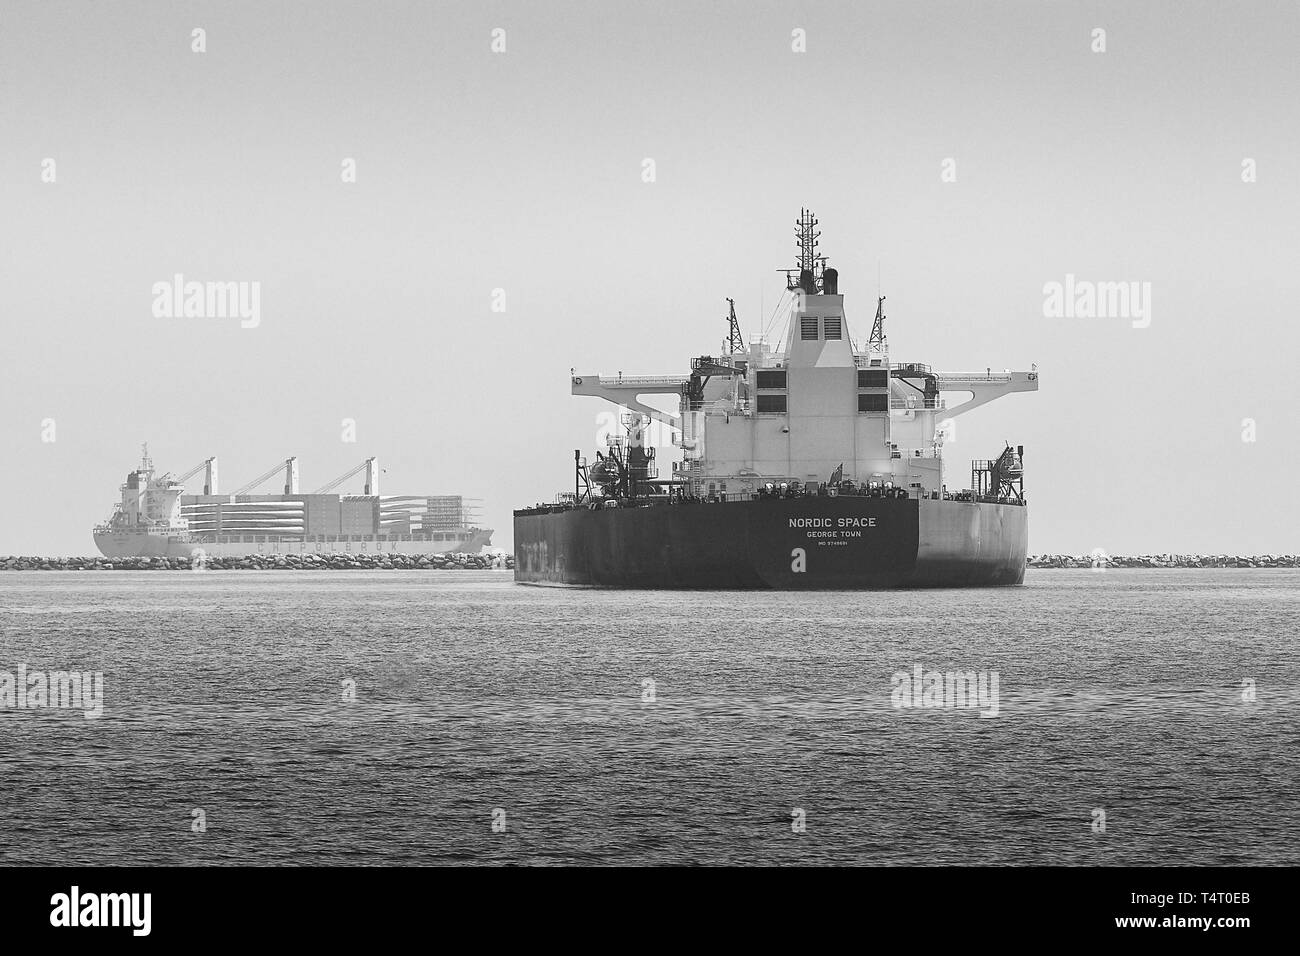 Black And White Photo Of The Giant Supertanker (Crude Oil Tanker), NORDIC SPACE, Anchored In The Port Of Long Beach, California, USA. - Stock Image